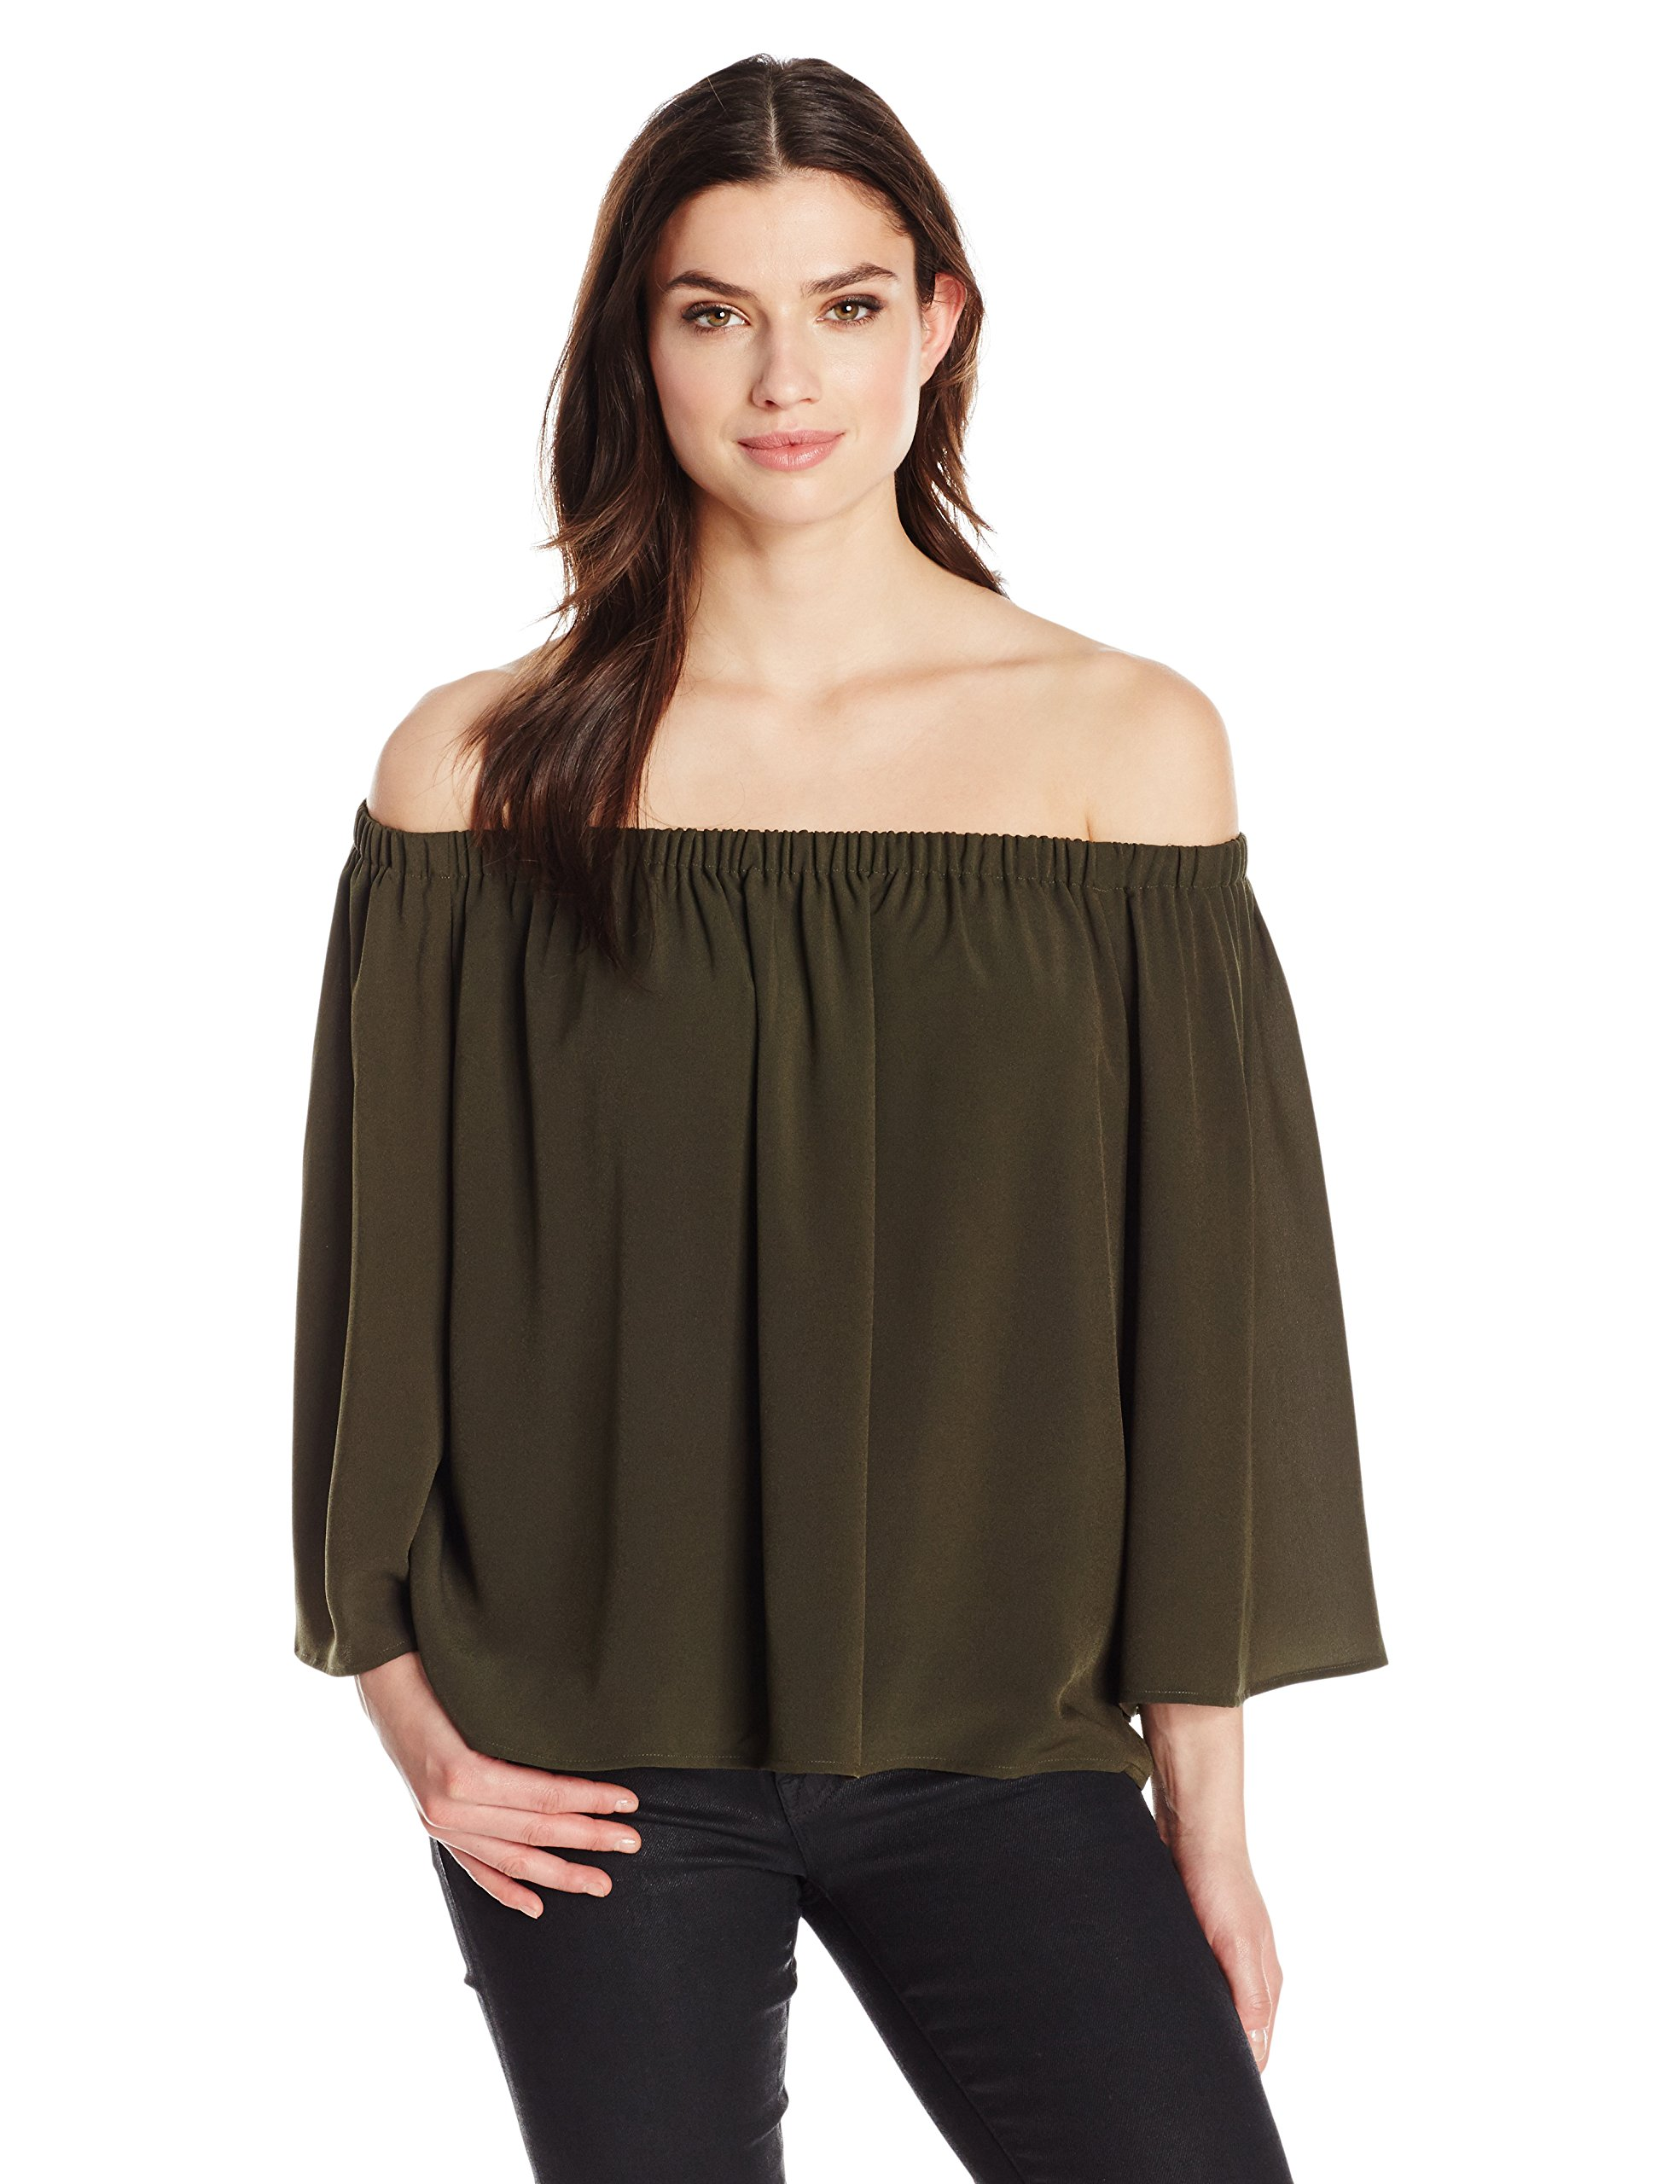 French Connection Women's Summer Crepe Light Off The Shoulder Top, Woodland Green, XS